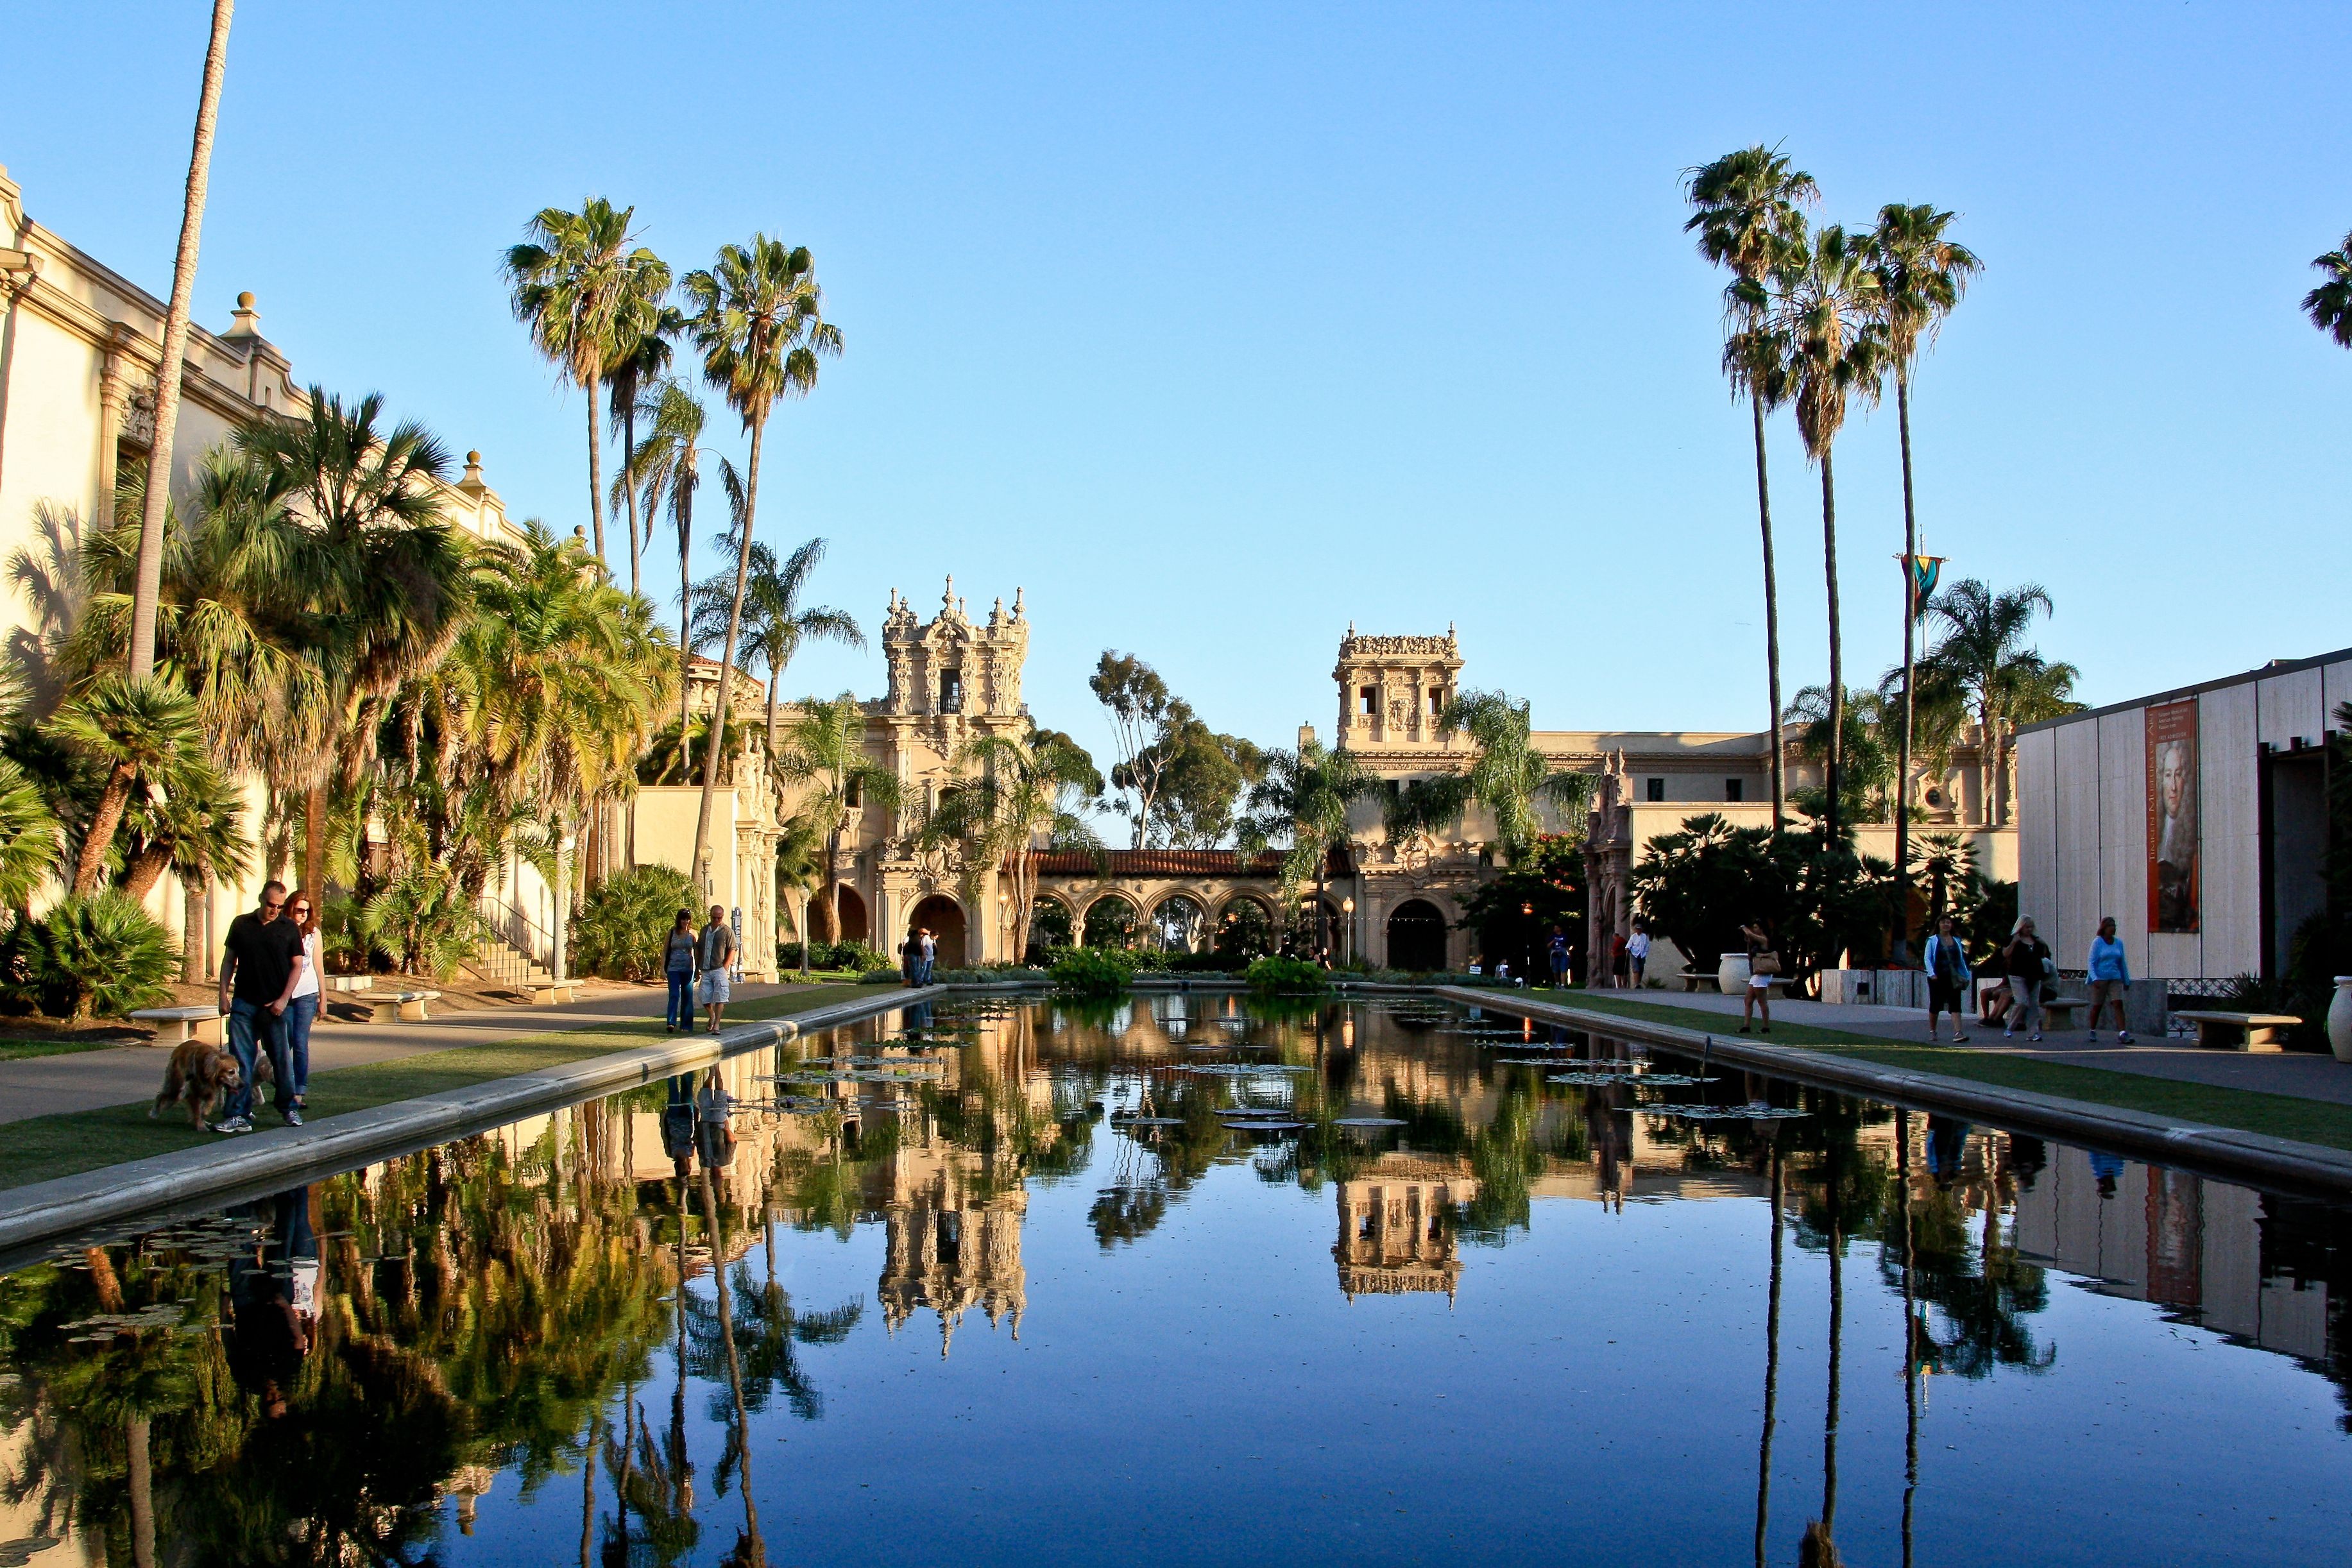 10 cool places in san diego that you must see   travel✈   san diego